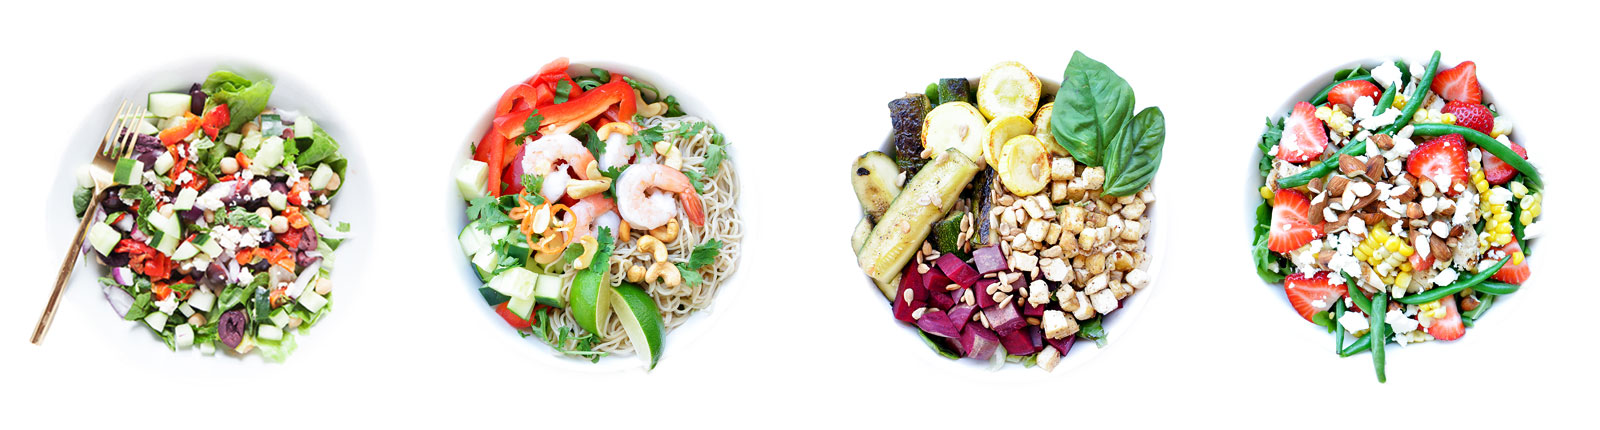 Shrimp Noodle Bowls with Spicy Peanut Dressing   Easy Gluten-Free Recipe   Loveleaf Co.